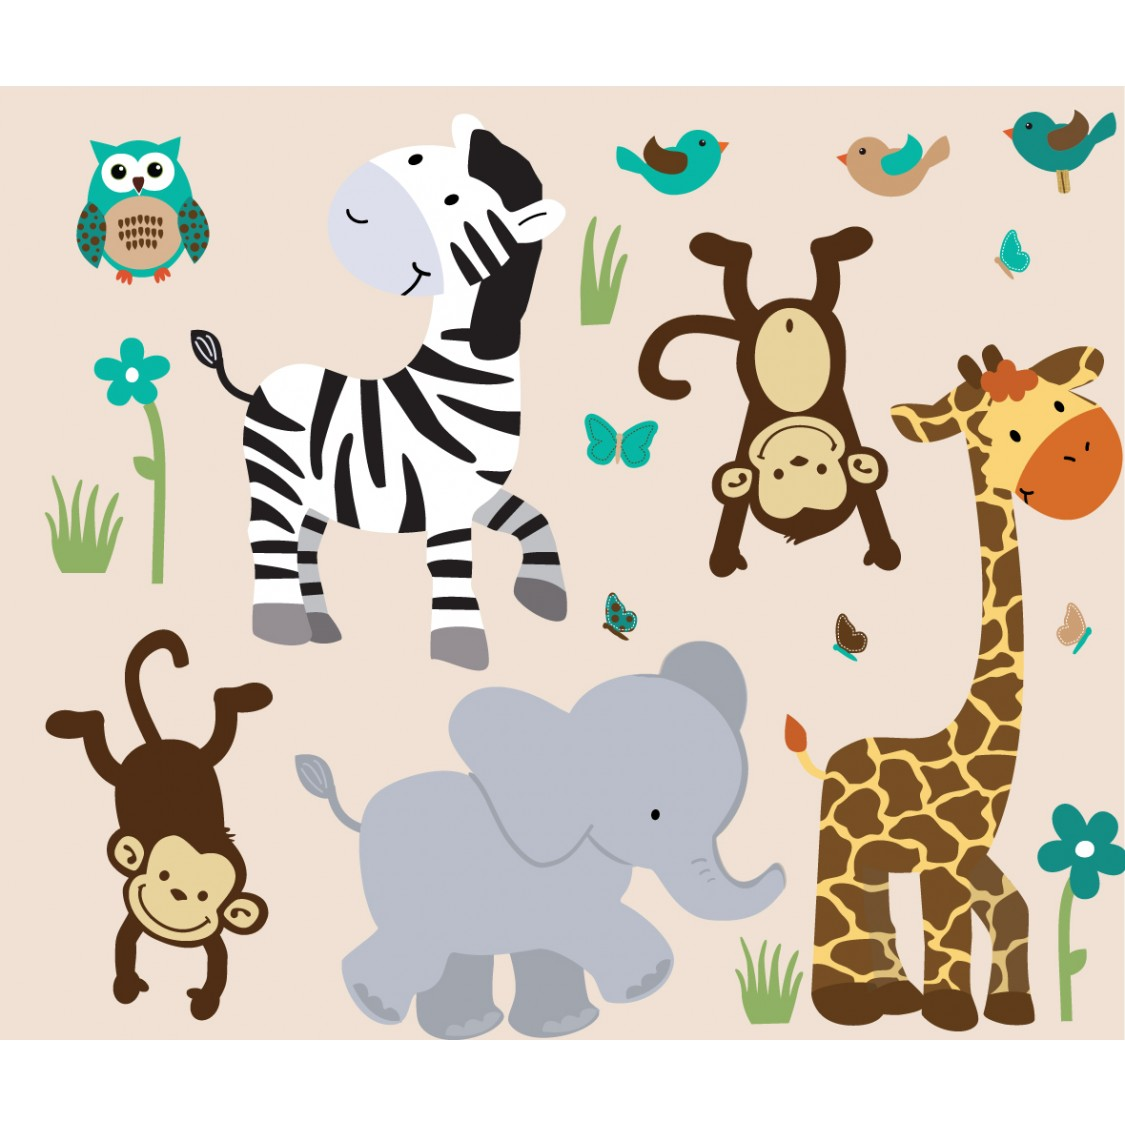 Wall stickers home wall stickers animal wall stickers giraffe wall - Animal Wall Decal Vinyl Wall Decals Wall Stickers Nature